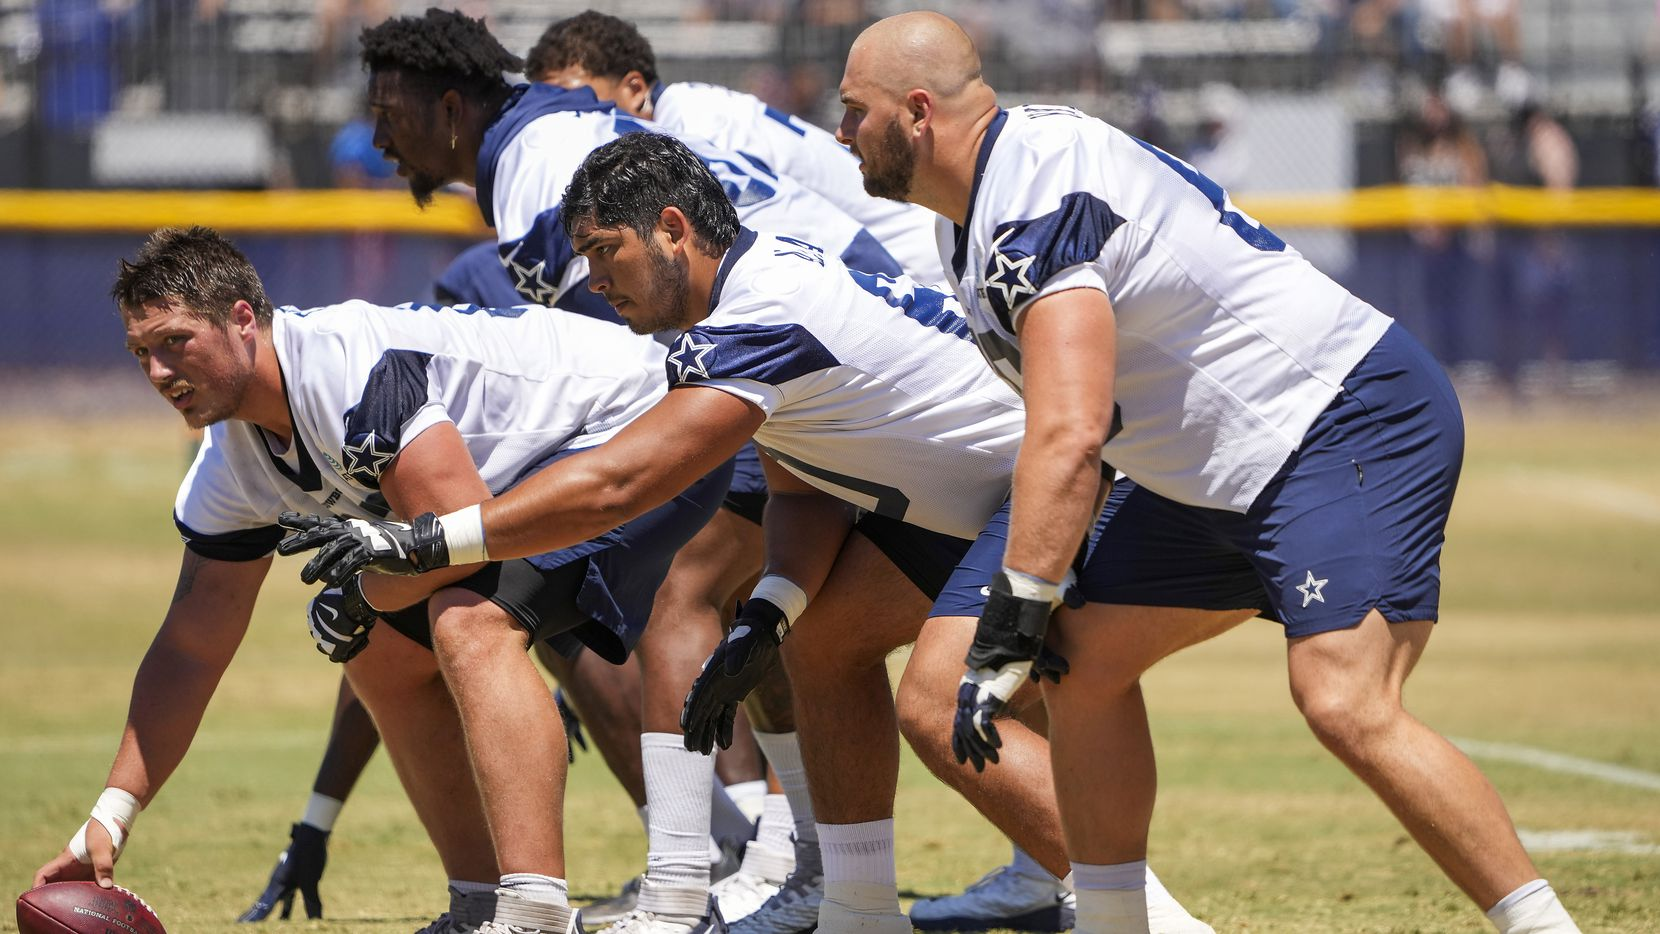 Dallas Cowboys tackle Isaac Alarcón (center) lines up with teammates during a practice at training camp on Tuesday, Aug. 3, 2021, in Oxnard, Calif.